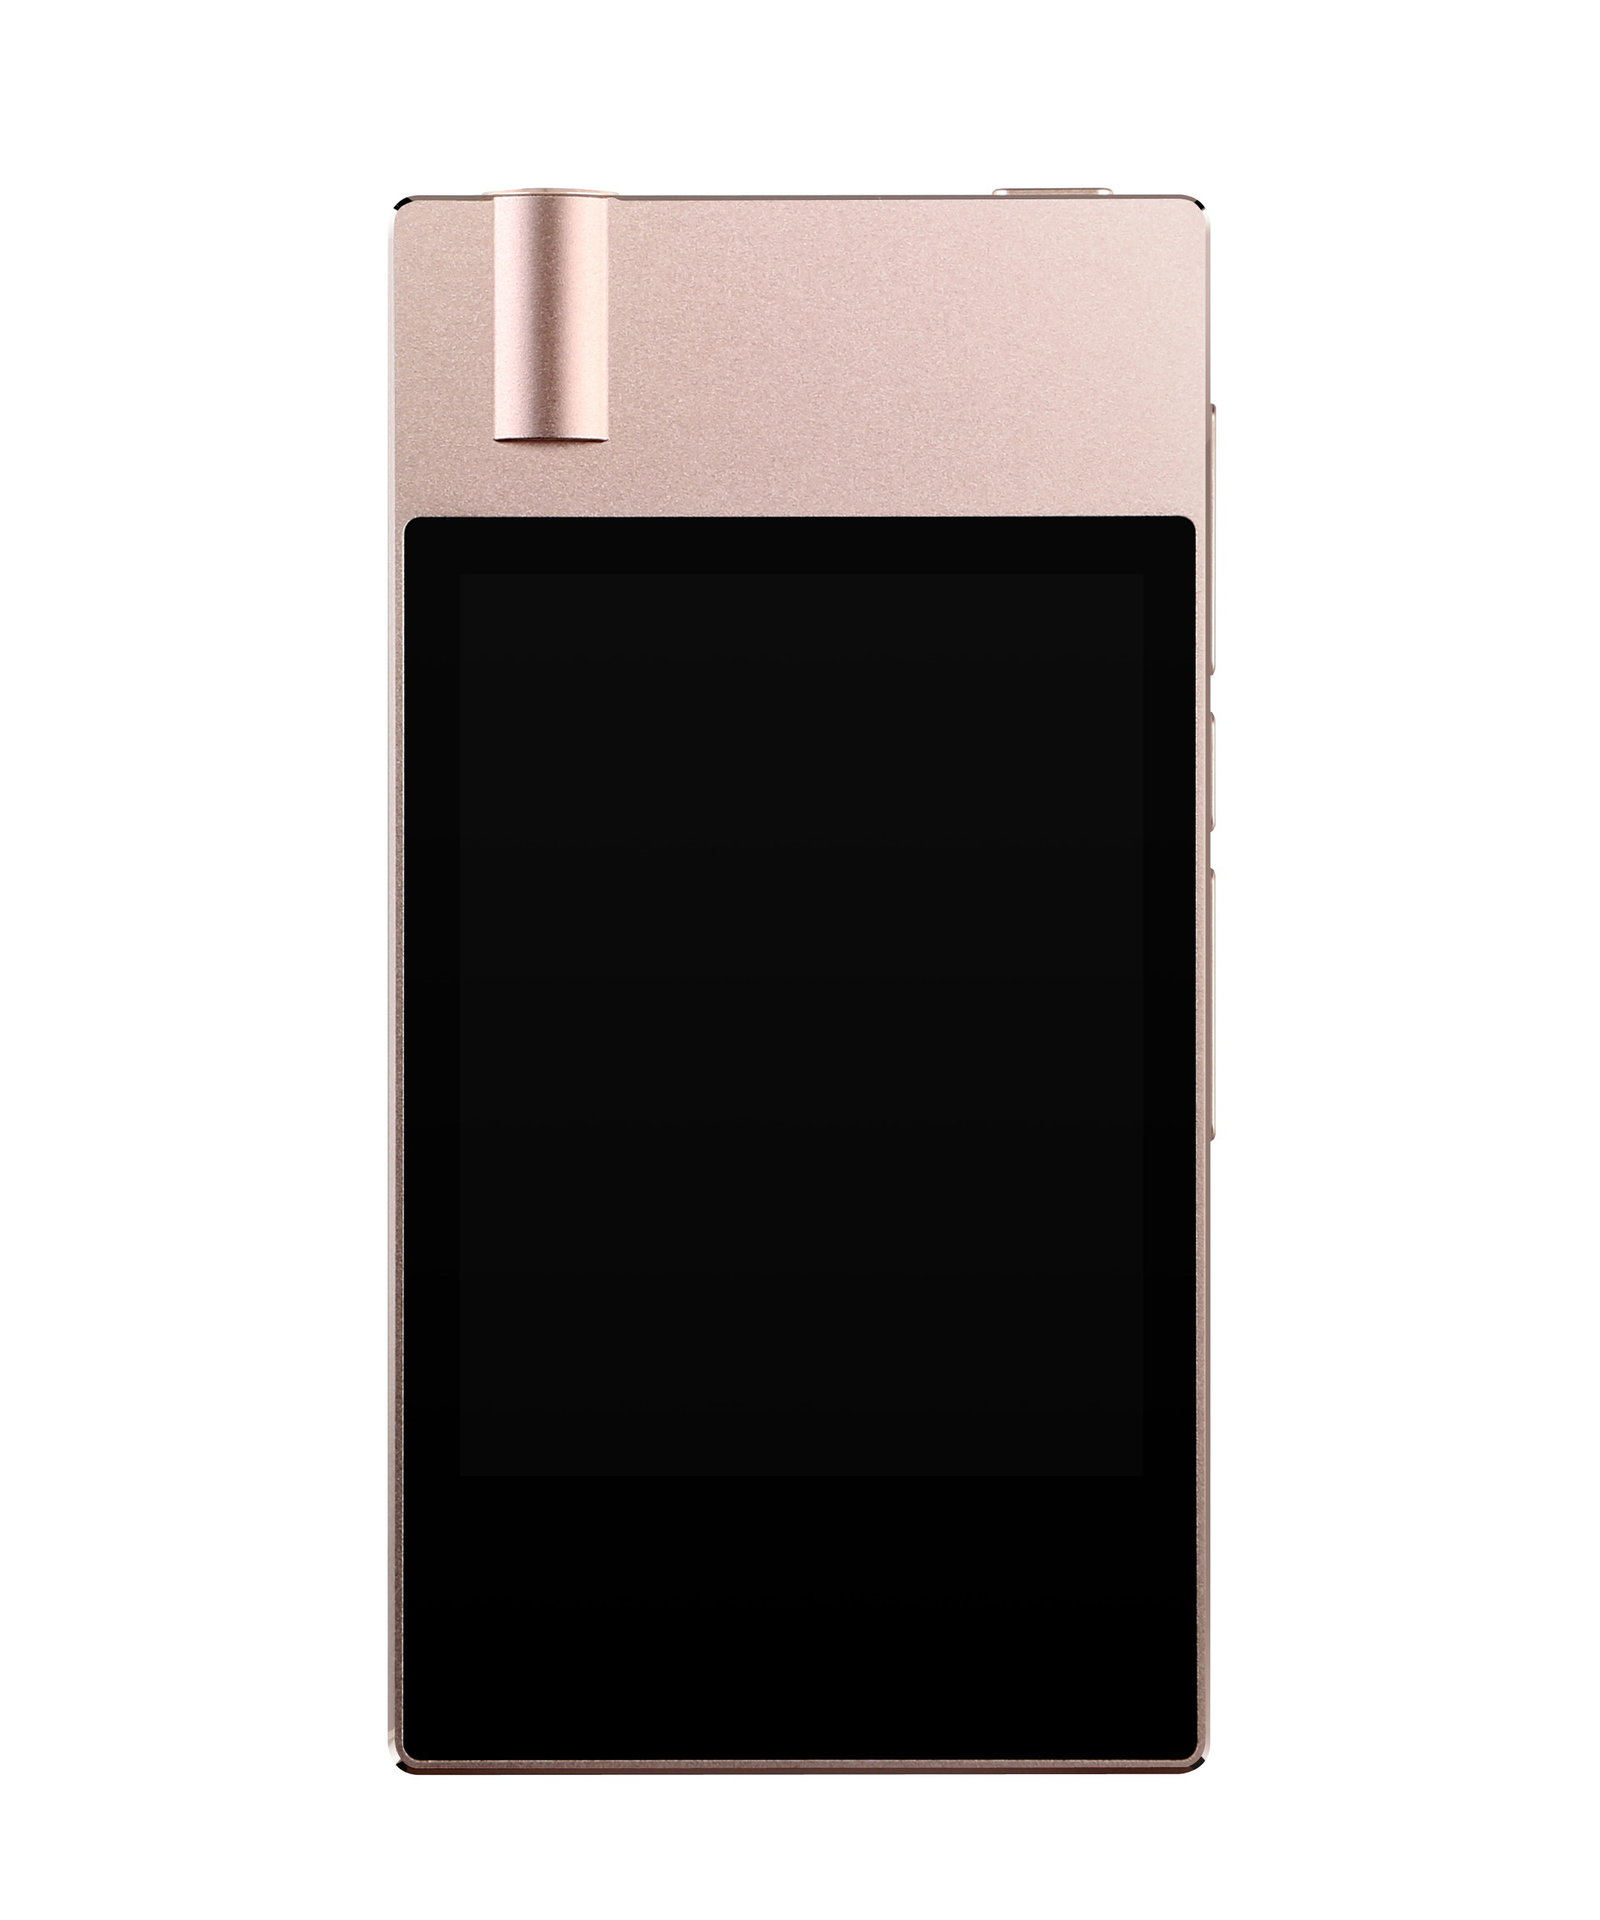 COWON Plenue J 64GB Jupiter Gold